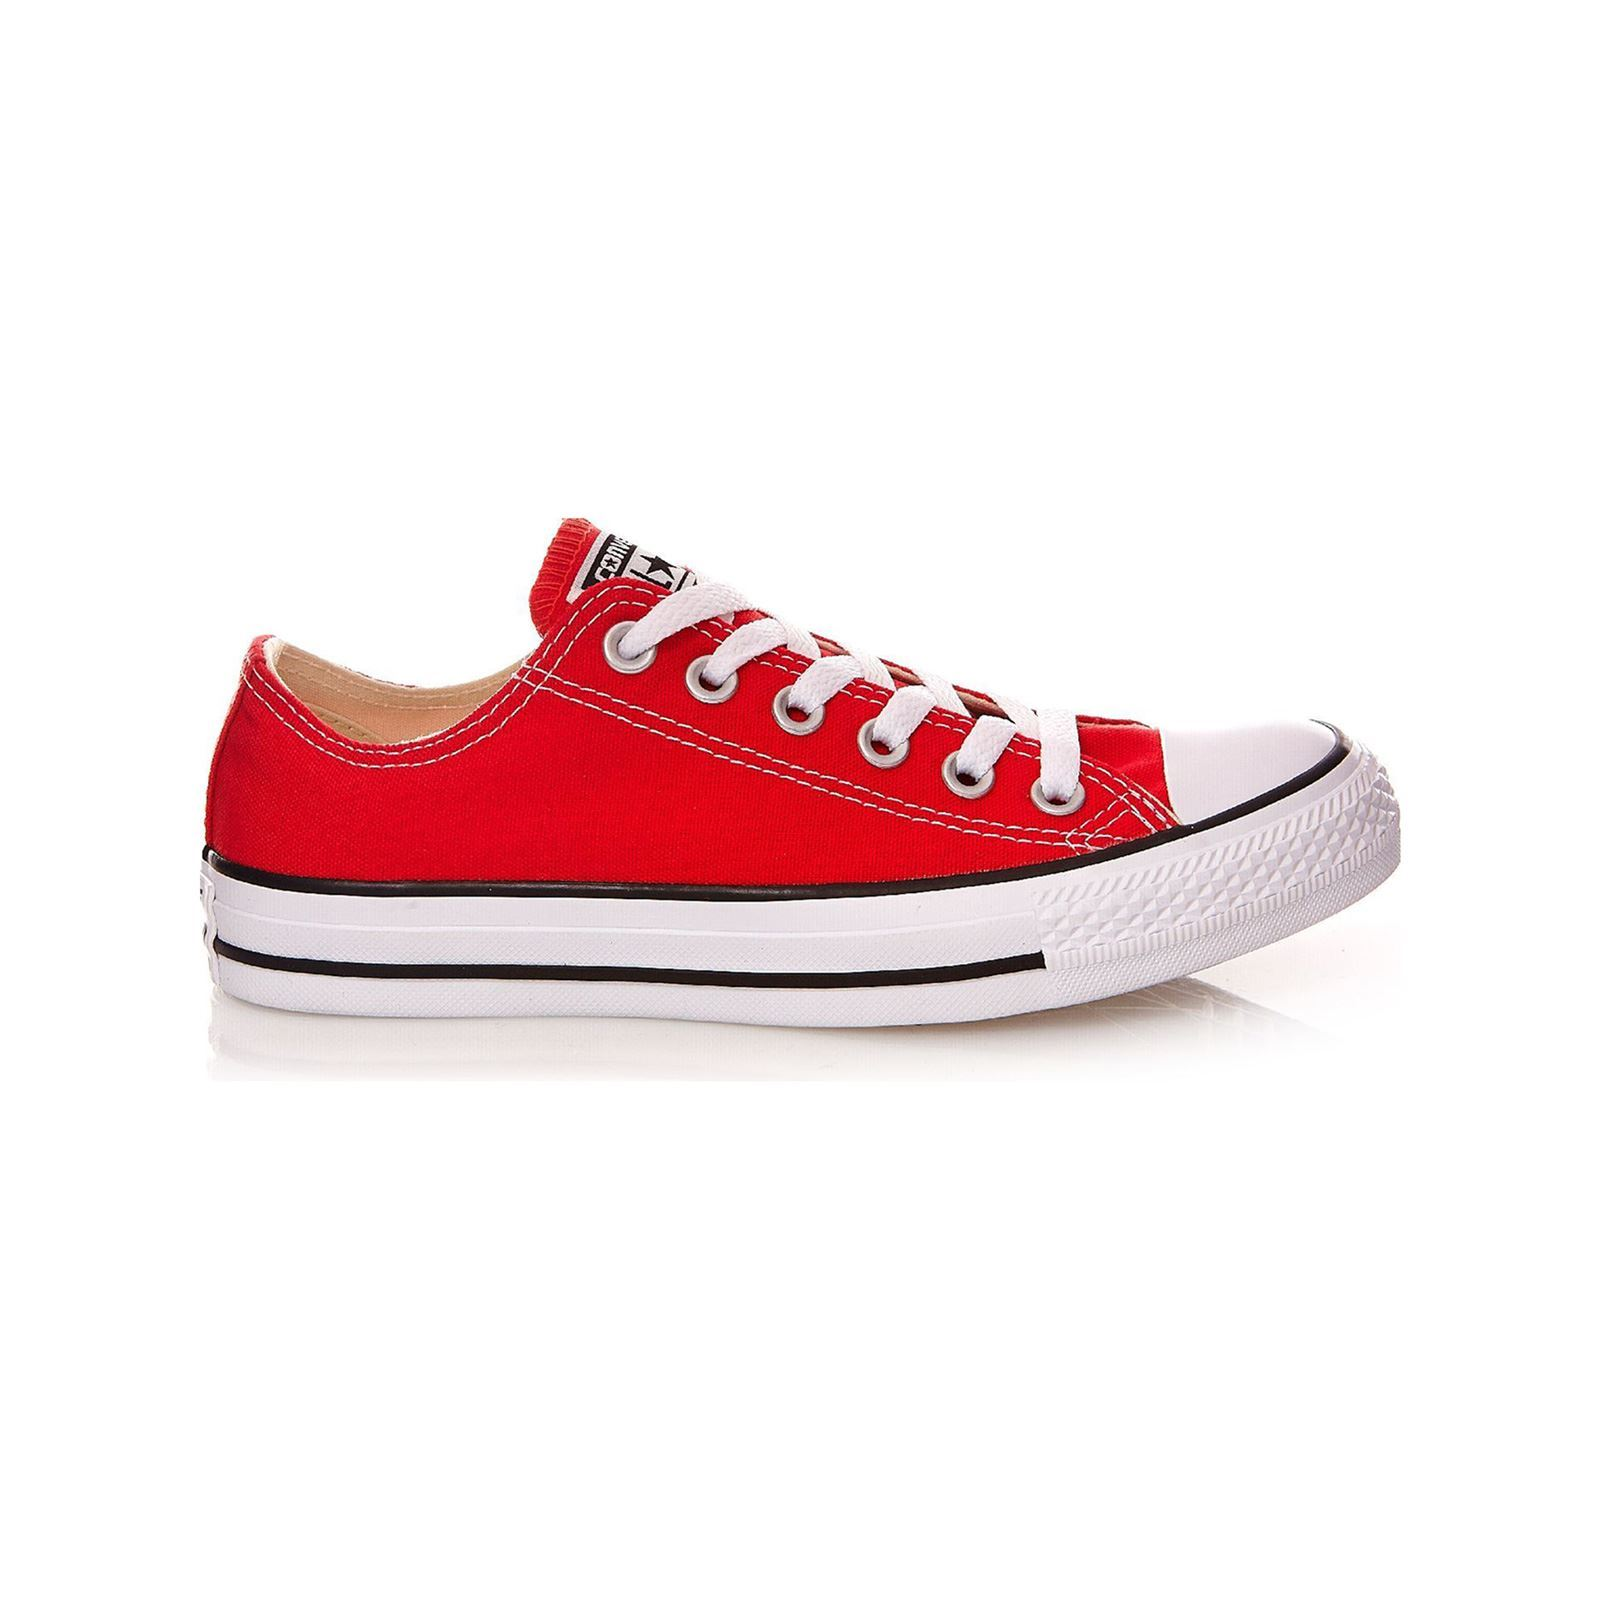 huge selection of 139e7 eff1a Chuck Taylor All Star Ox - Turnschuhe, Sneakers - rot